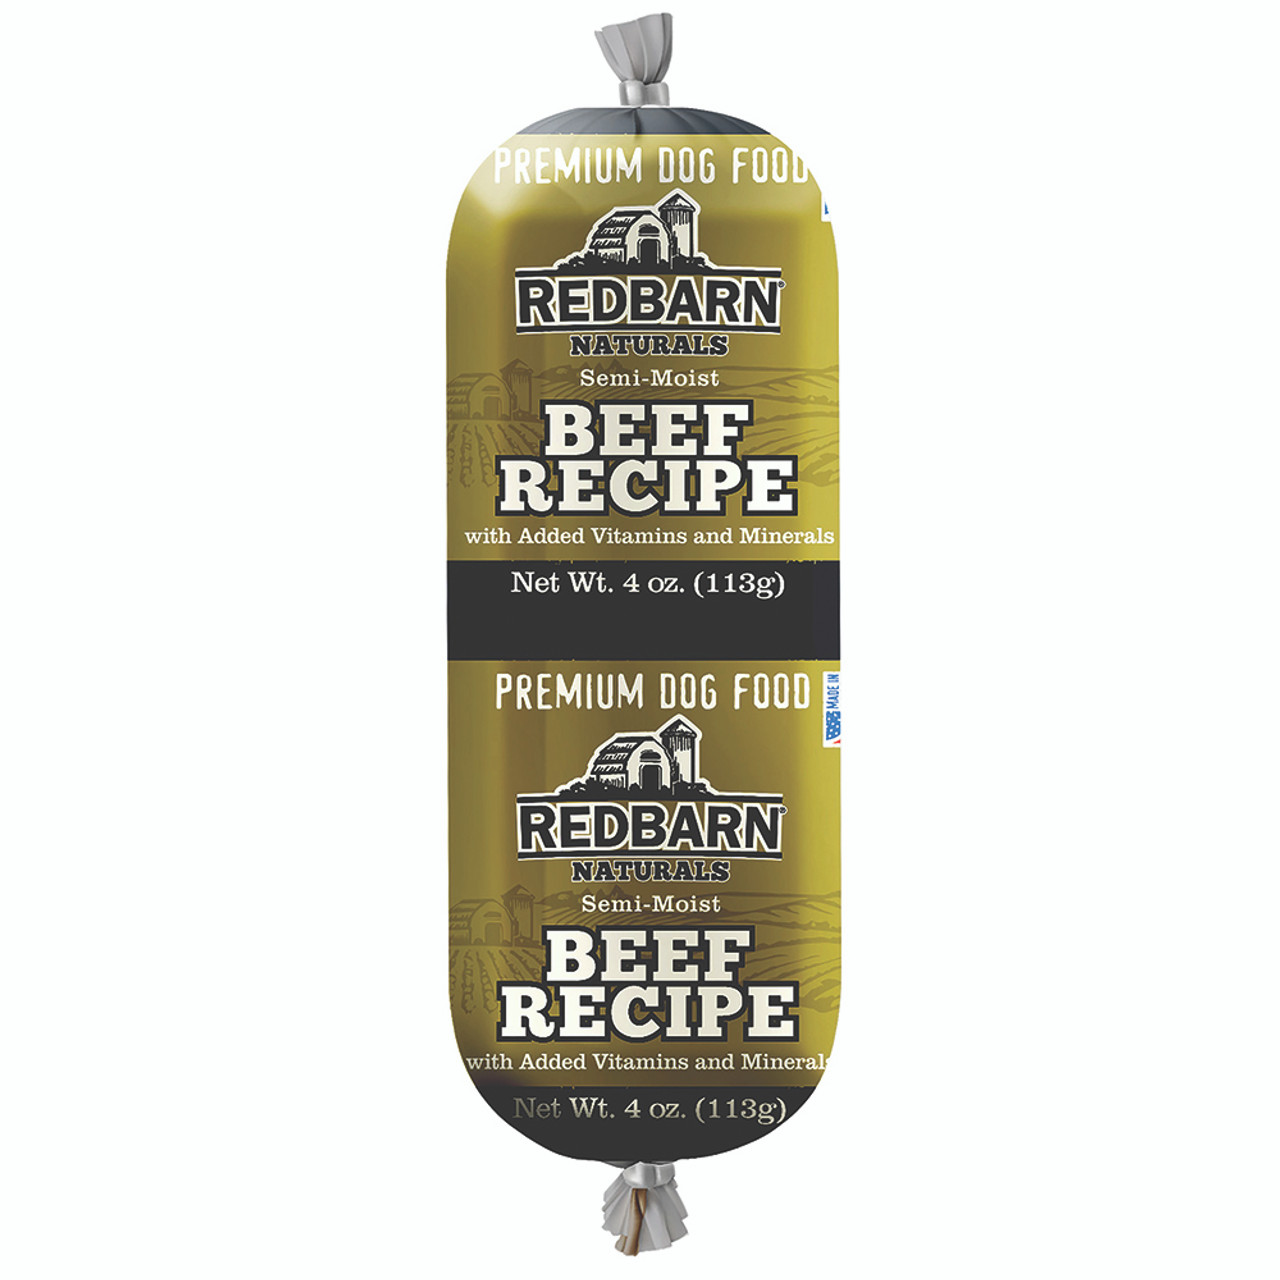 Redbarn Naturals Beef Recipe Rolled Dog Food